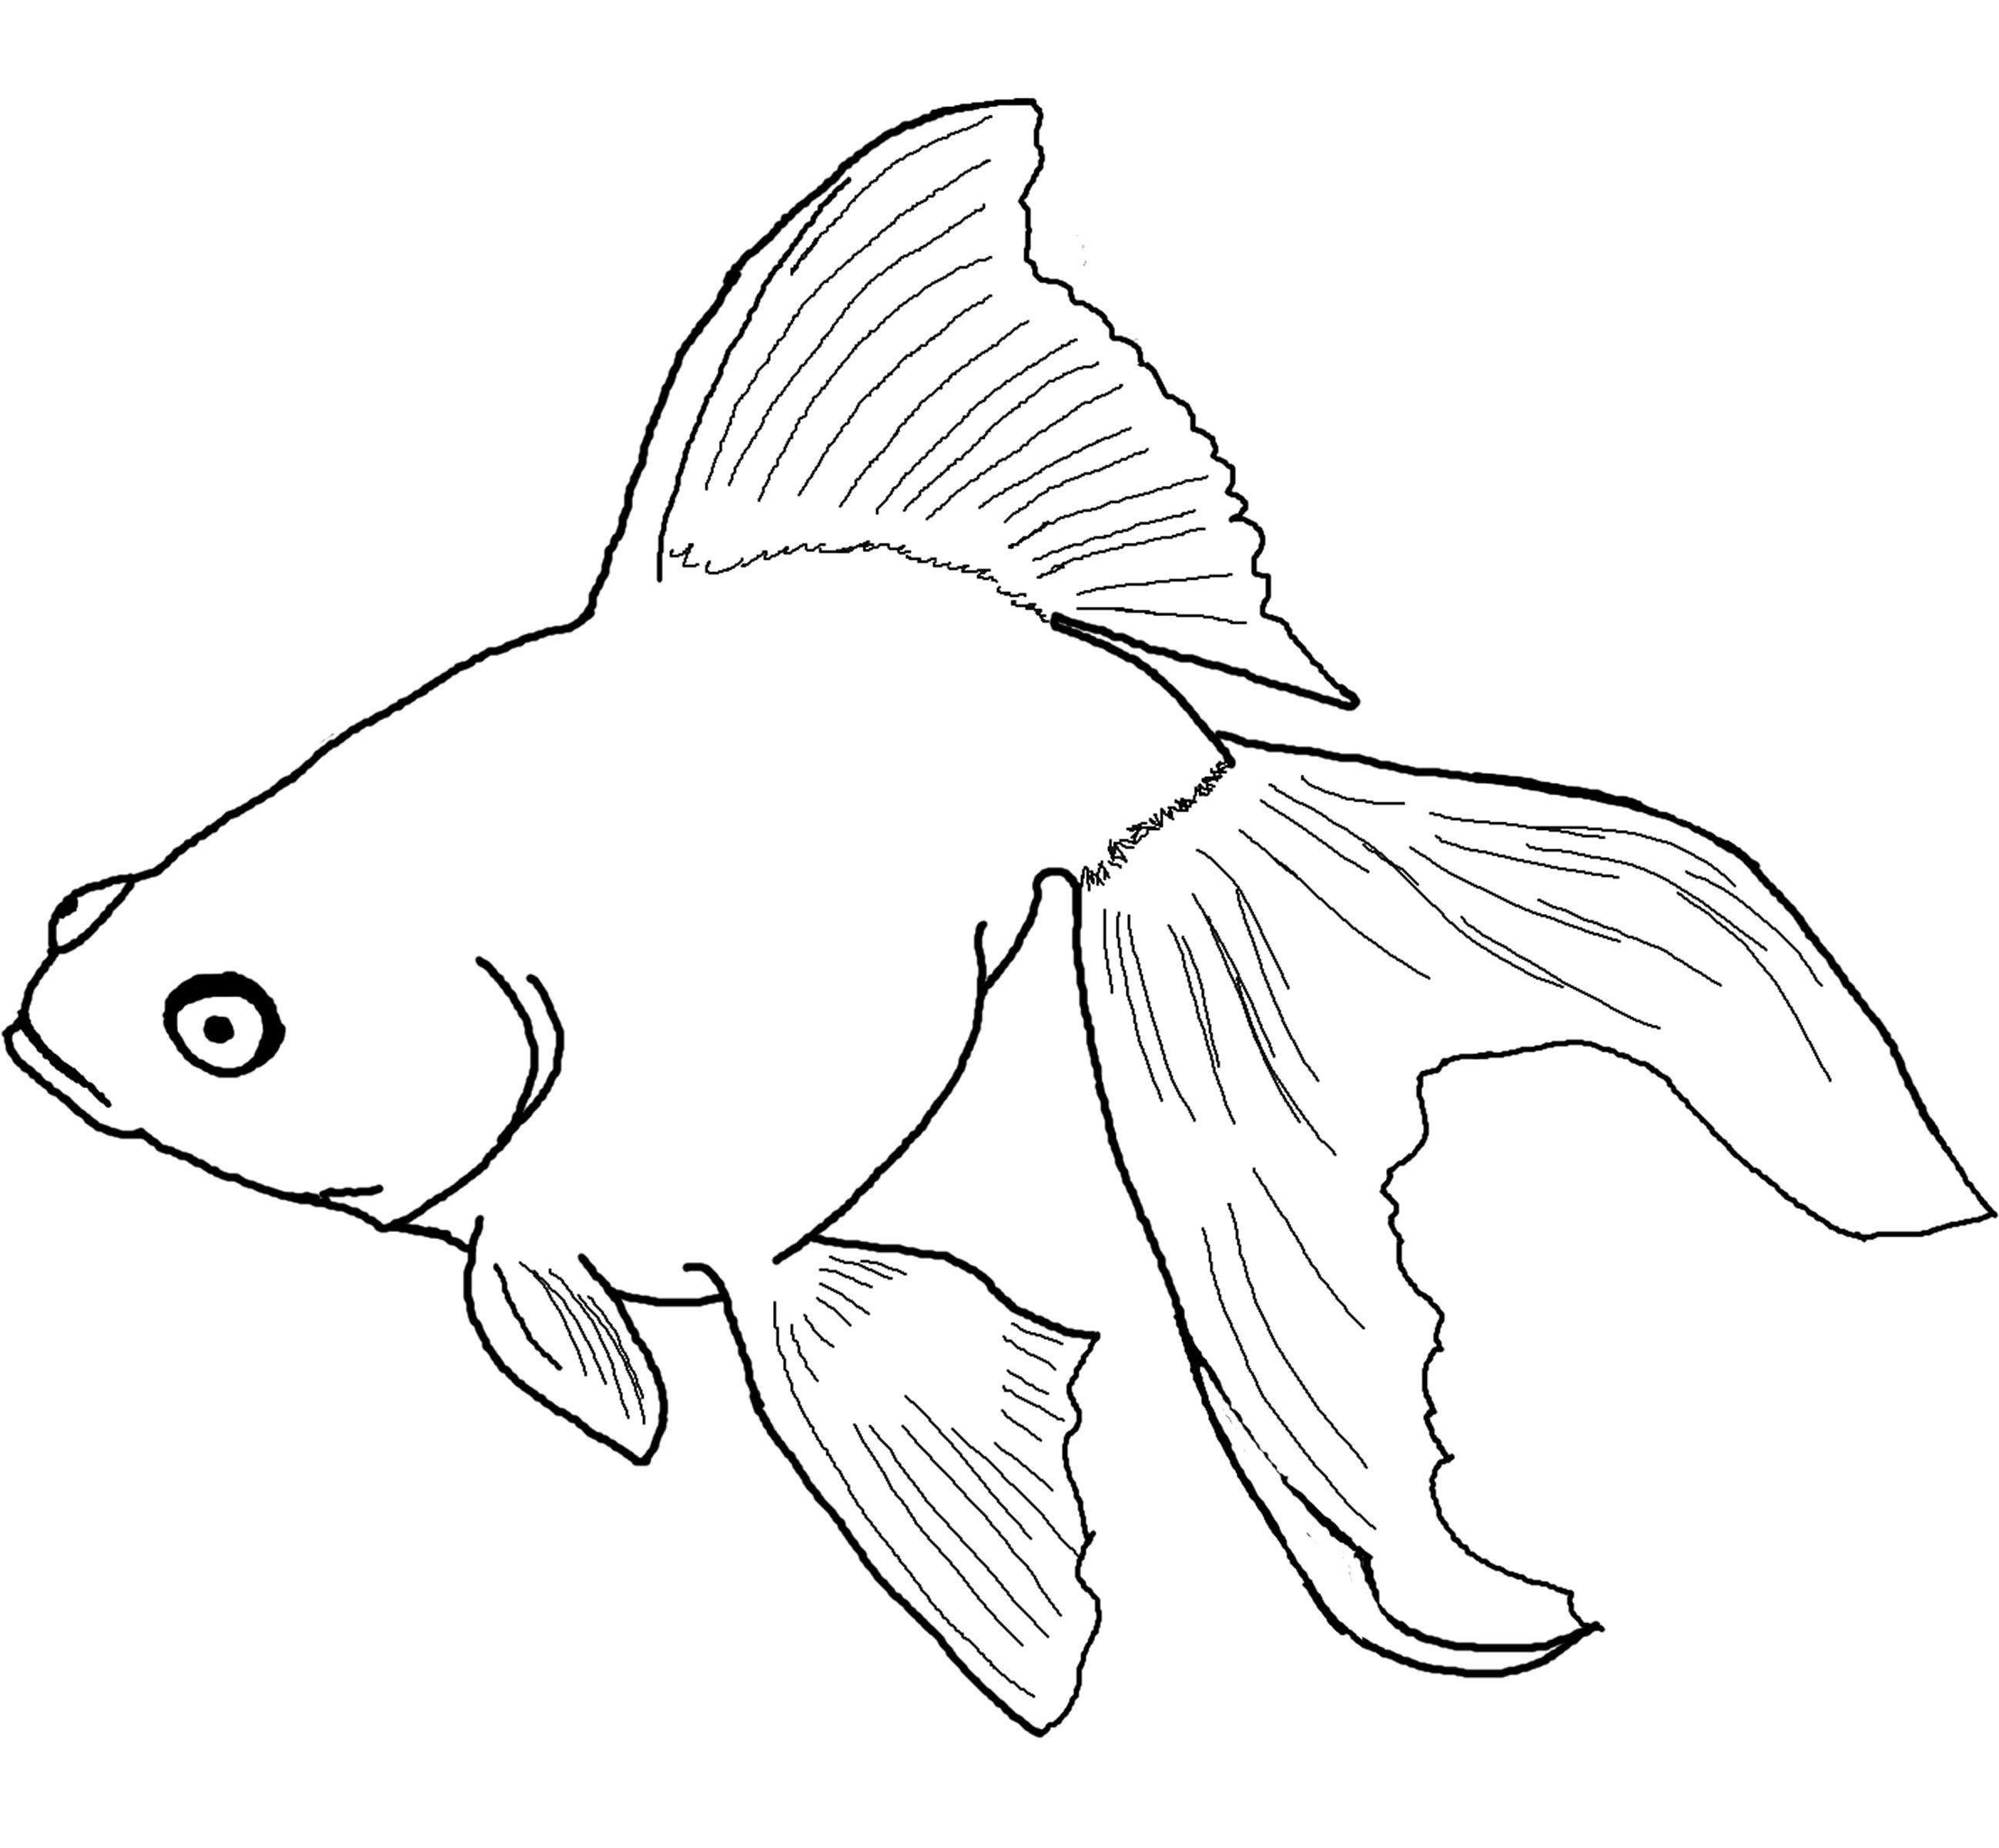 2596x2400 Secrets Fish Images To Color Coloring Pages Free Remarkable